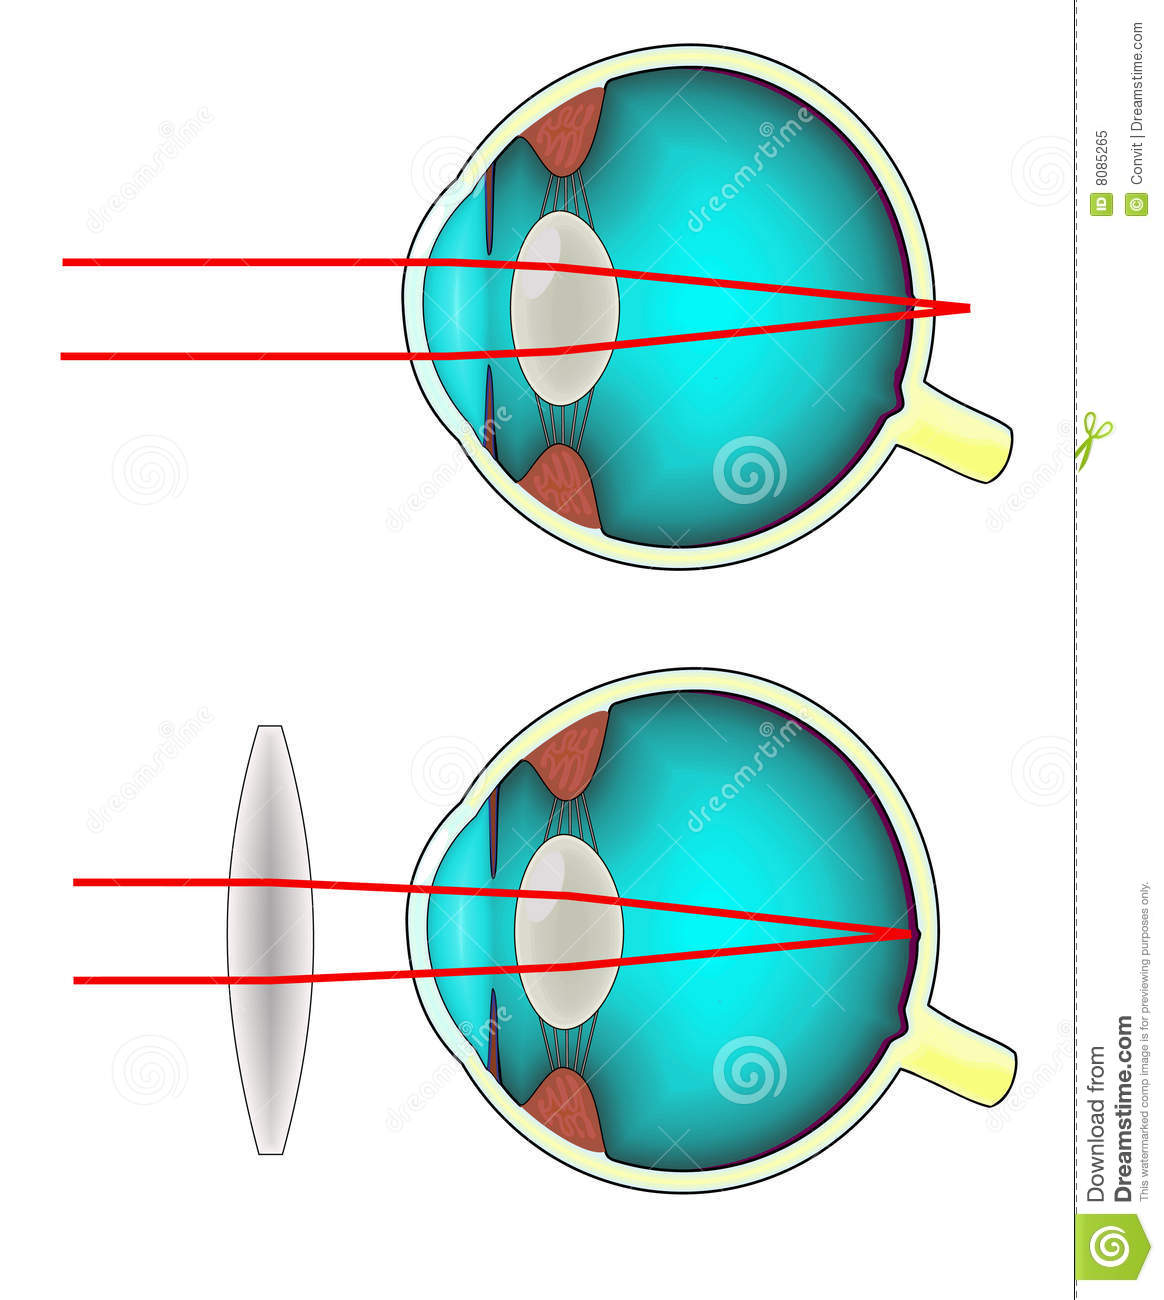 hight resolution of an anatomical diagram of a longsighted human eye corrected with a convex lens